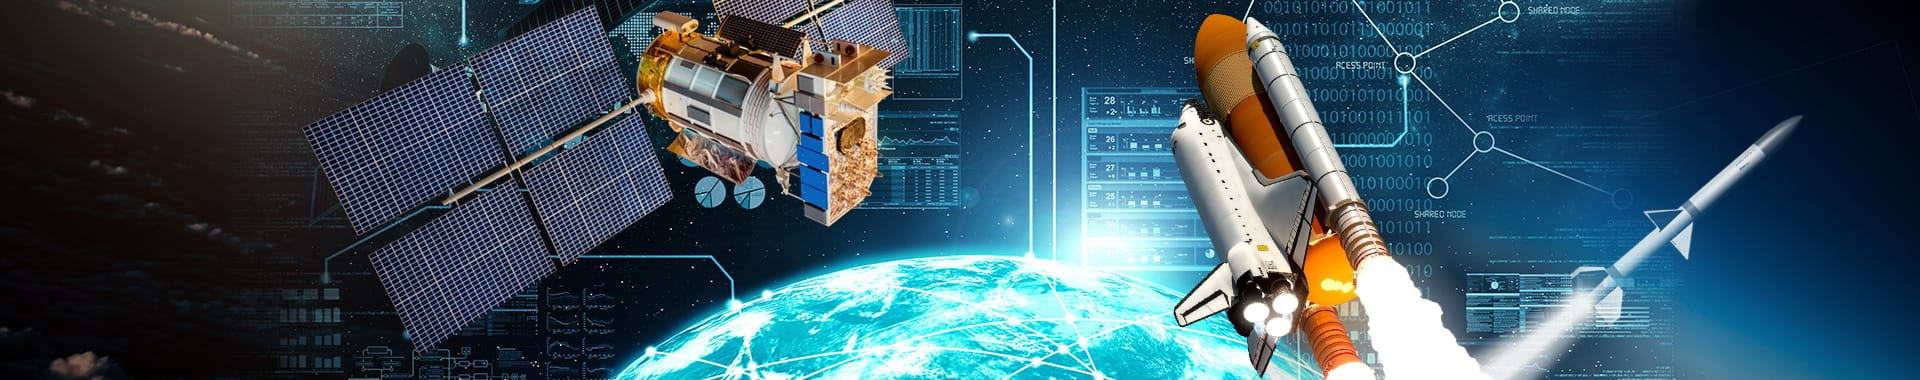 A montage conveying the Telemetry market with graphs and charts, a satellite and space shuttle over the Earth